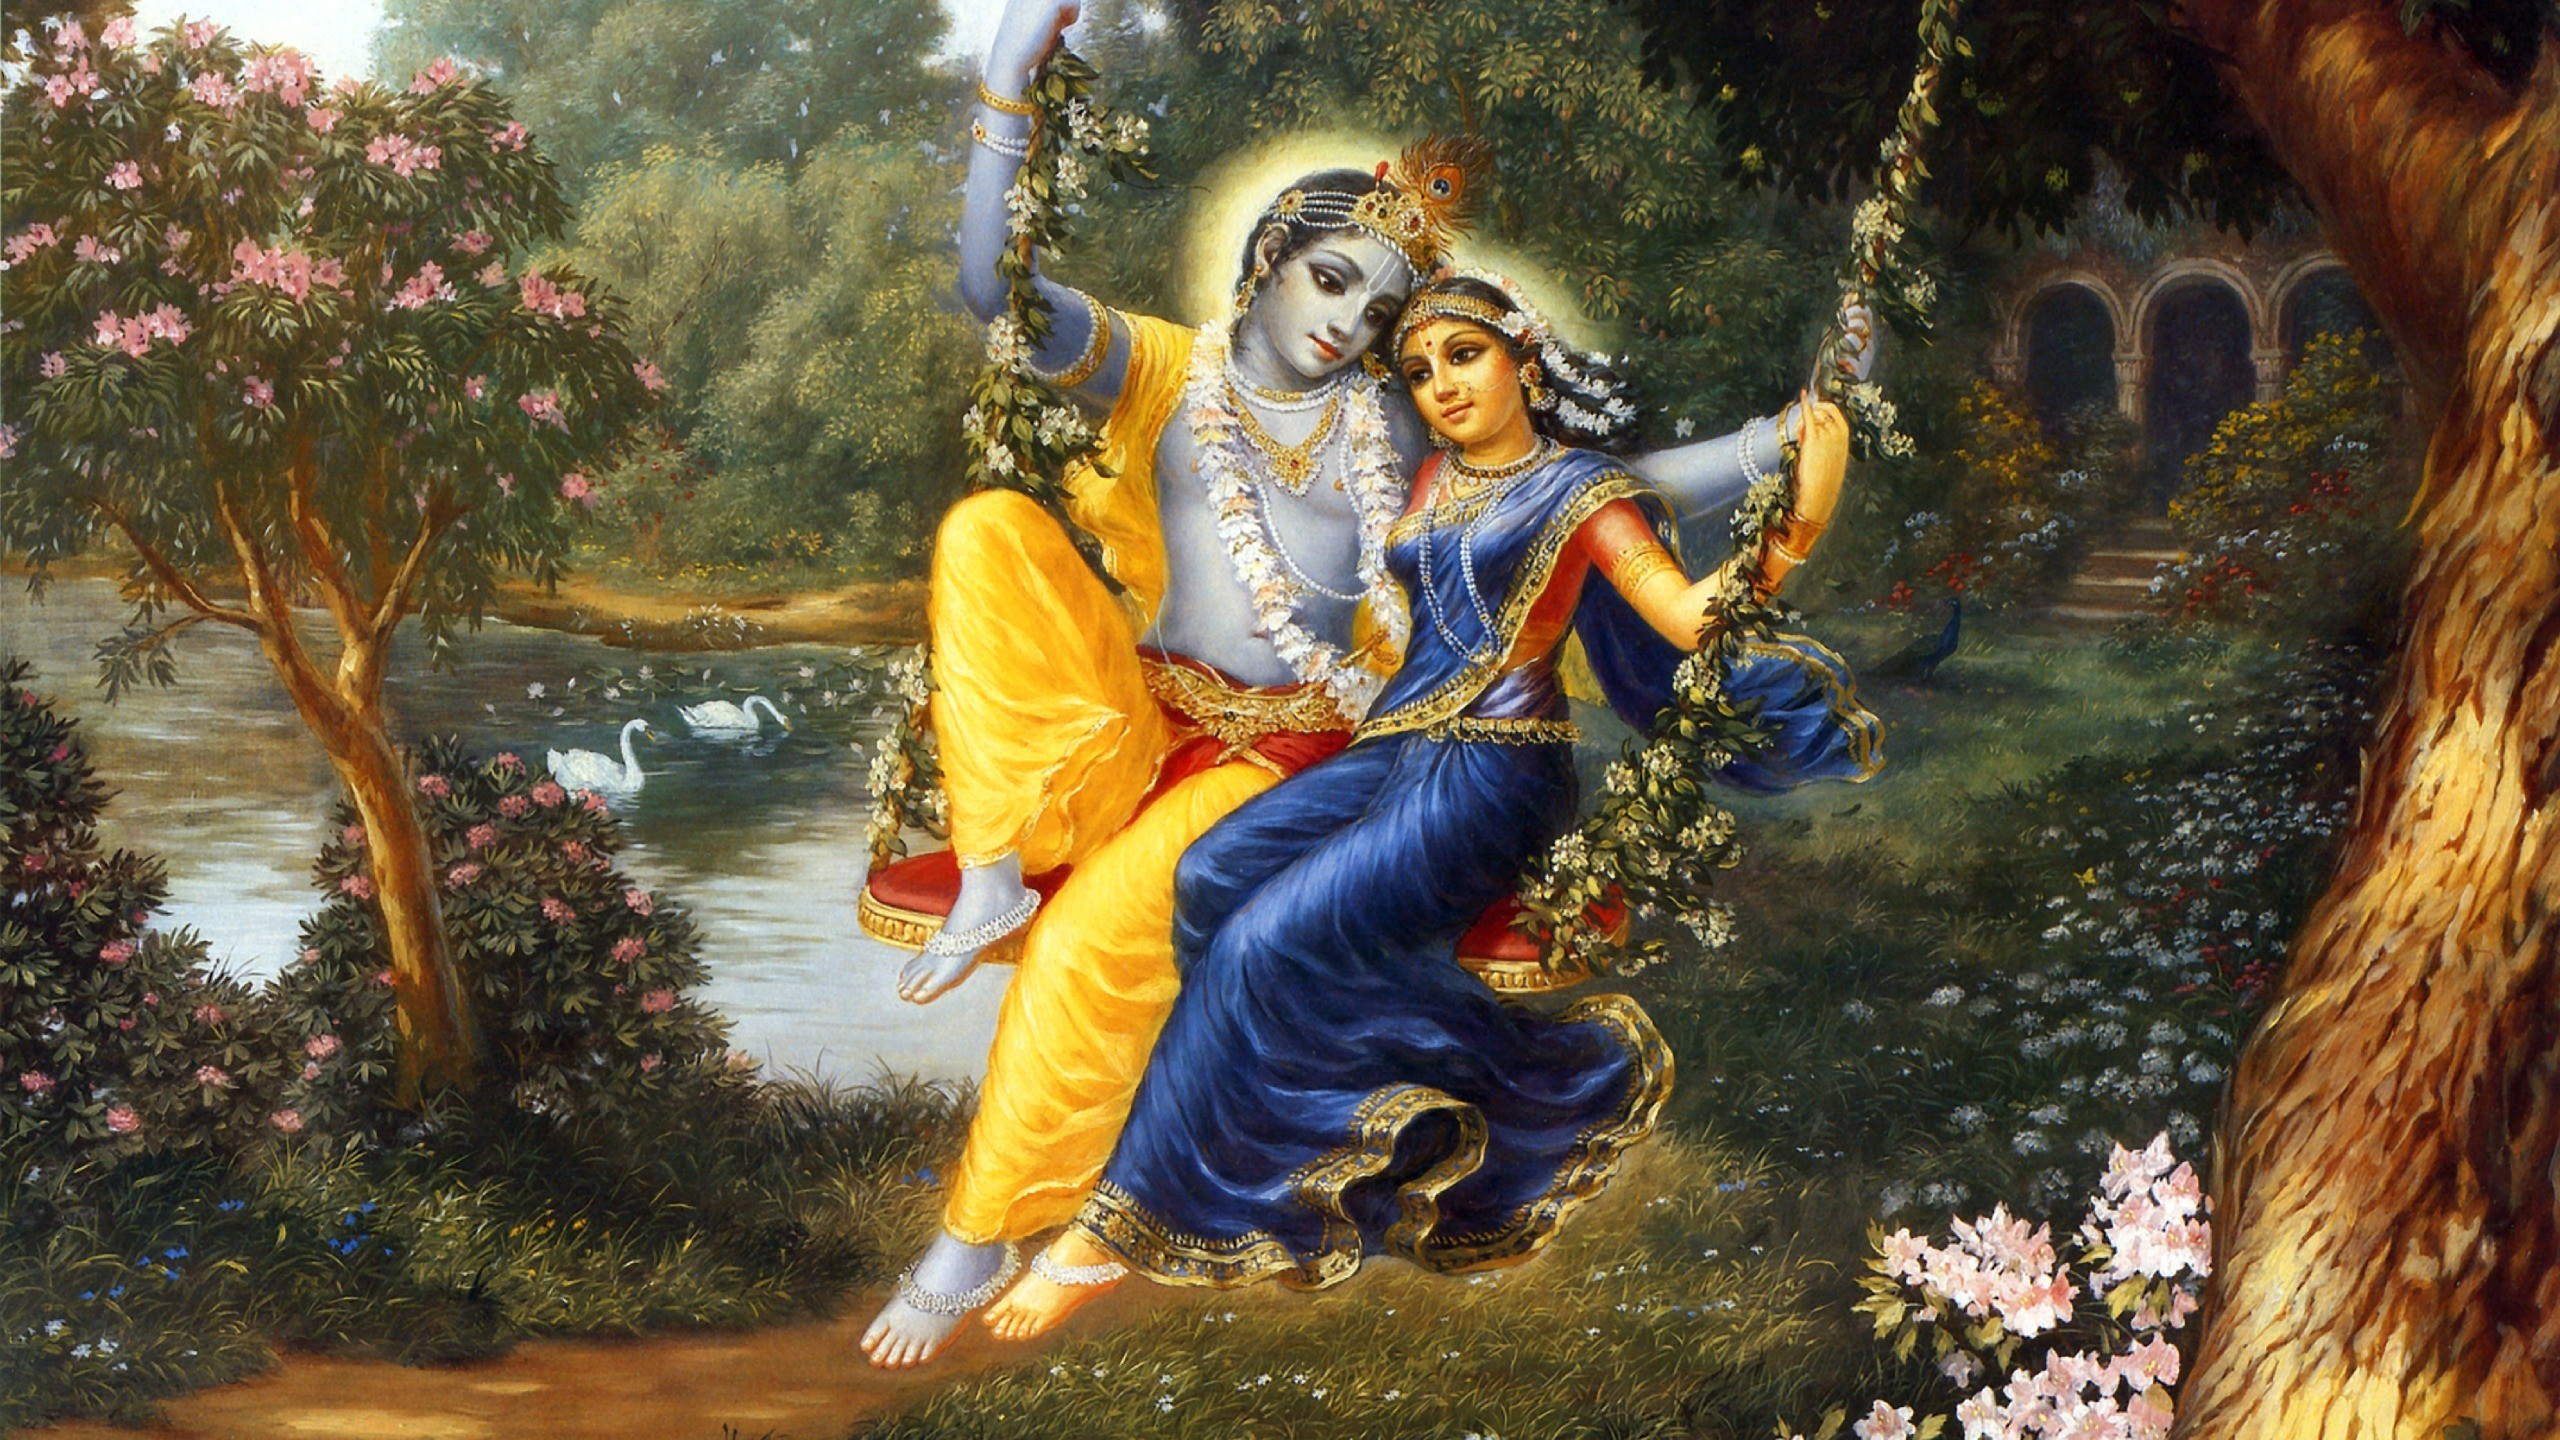 Hd wallpaper krishna and radha - Radha Krishna Wallpaper